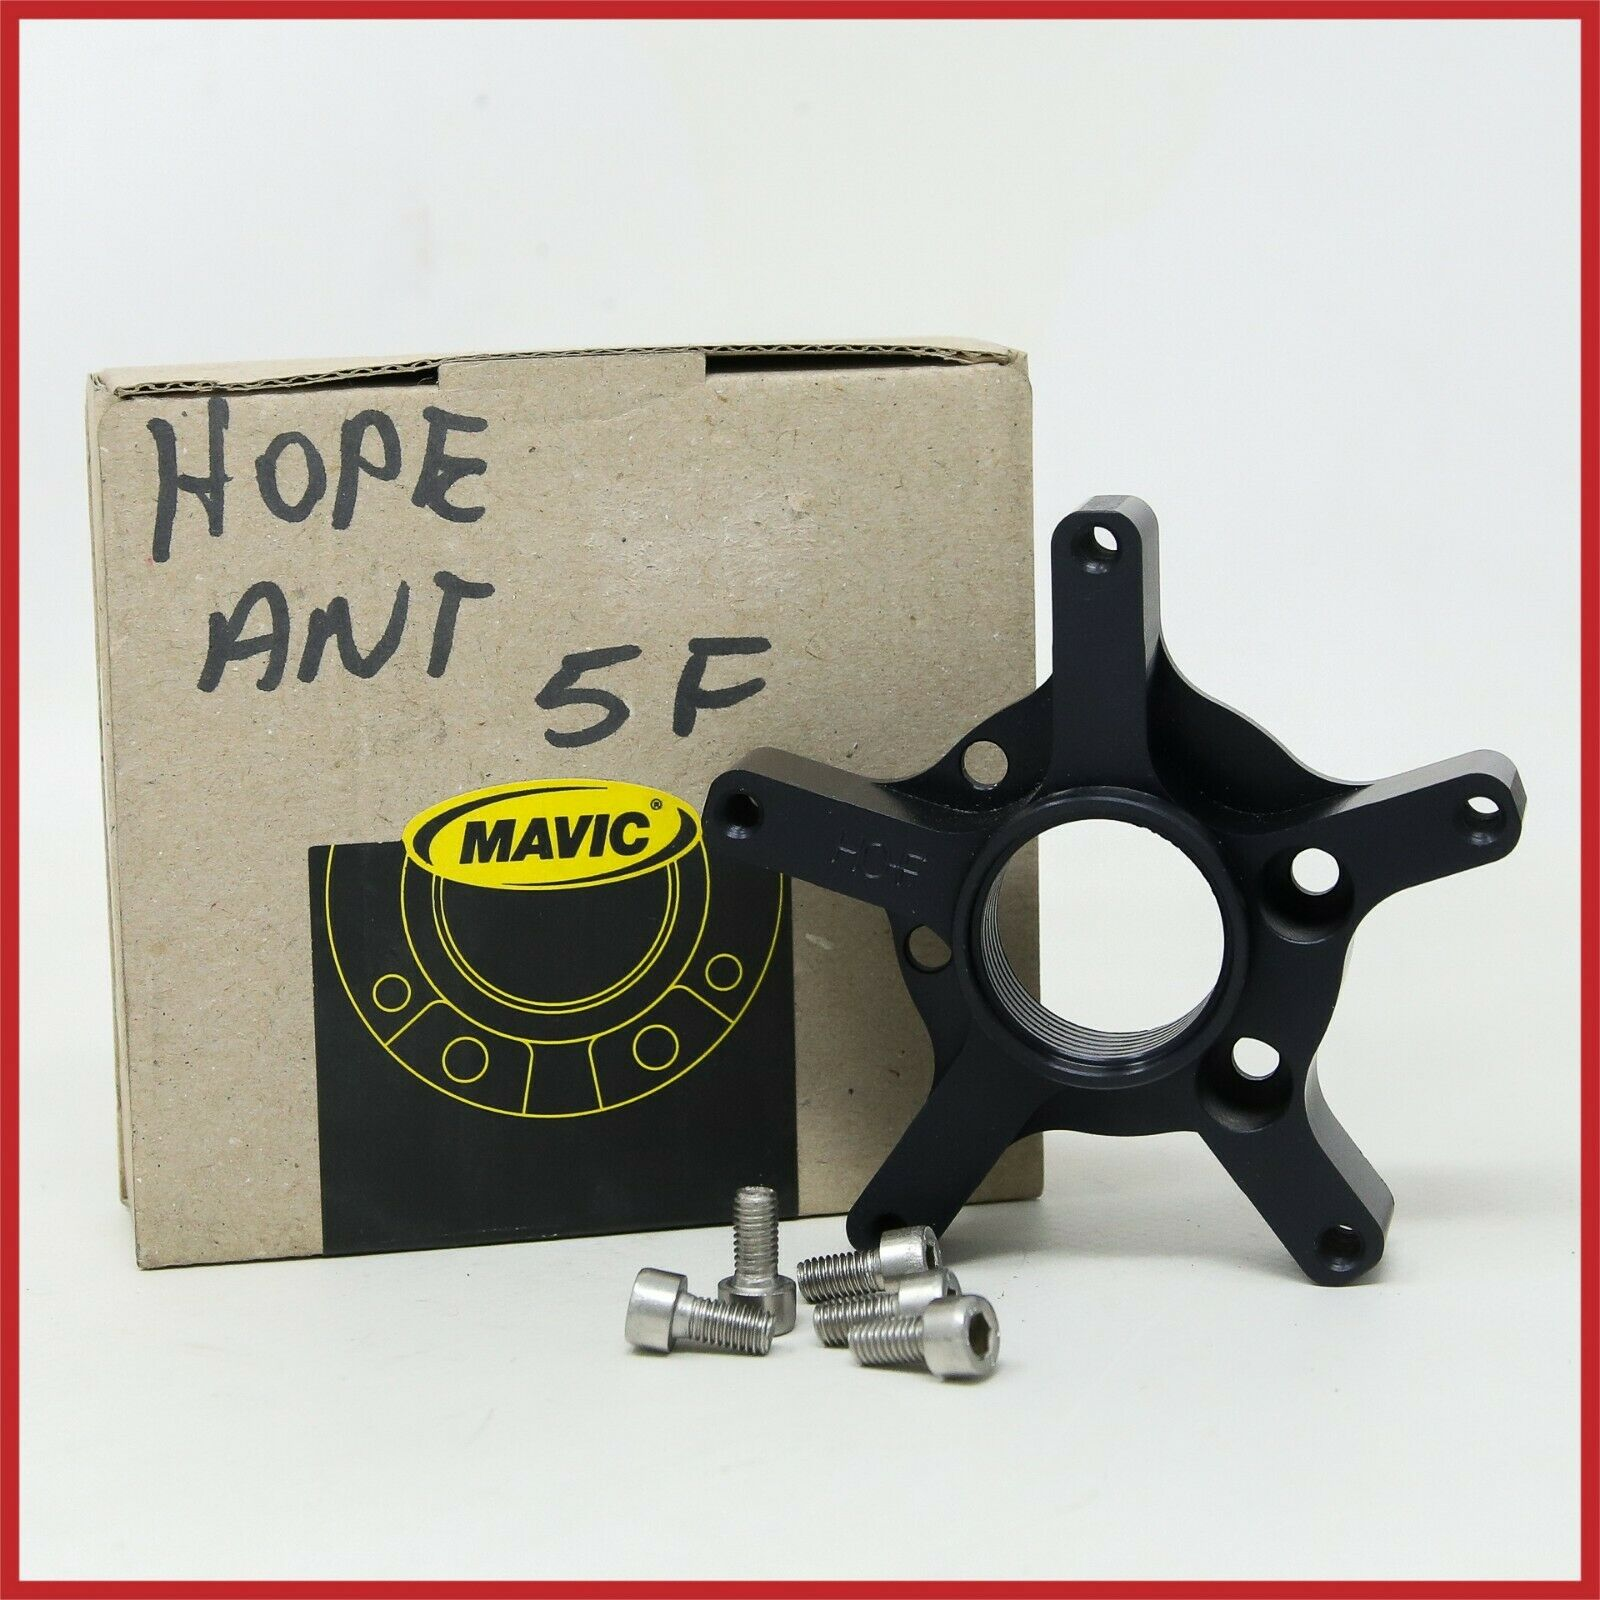 NOS MAVIC M40161 FRONT HUB  ADAPTER HOPE DISC 5 HOLES CNC BRAKE HUBS MTB MOUNTAIN  check out the cheapest